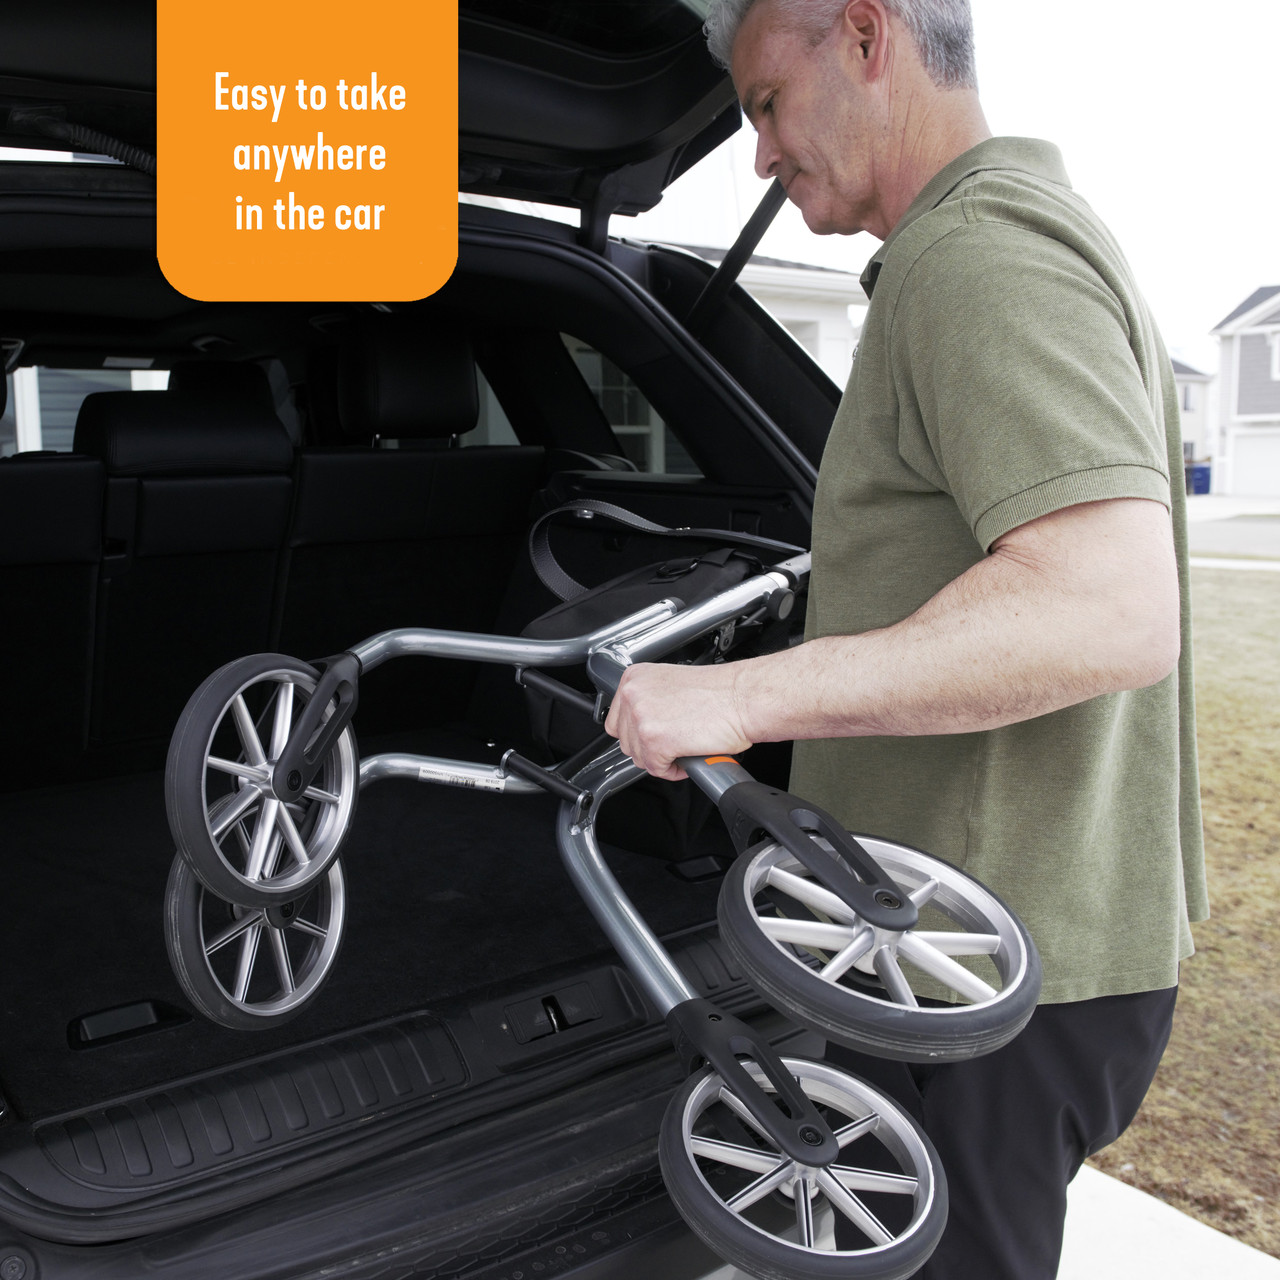 Let's Move Rollator  is lightweight, only 12.8 lbs!